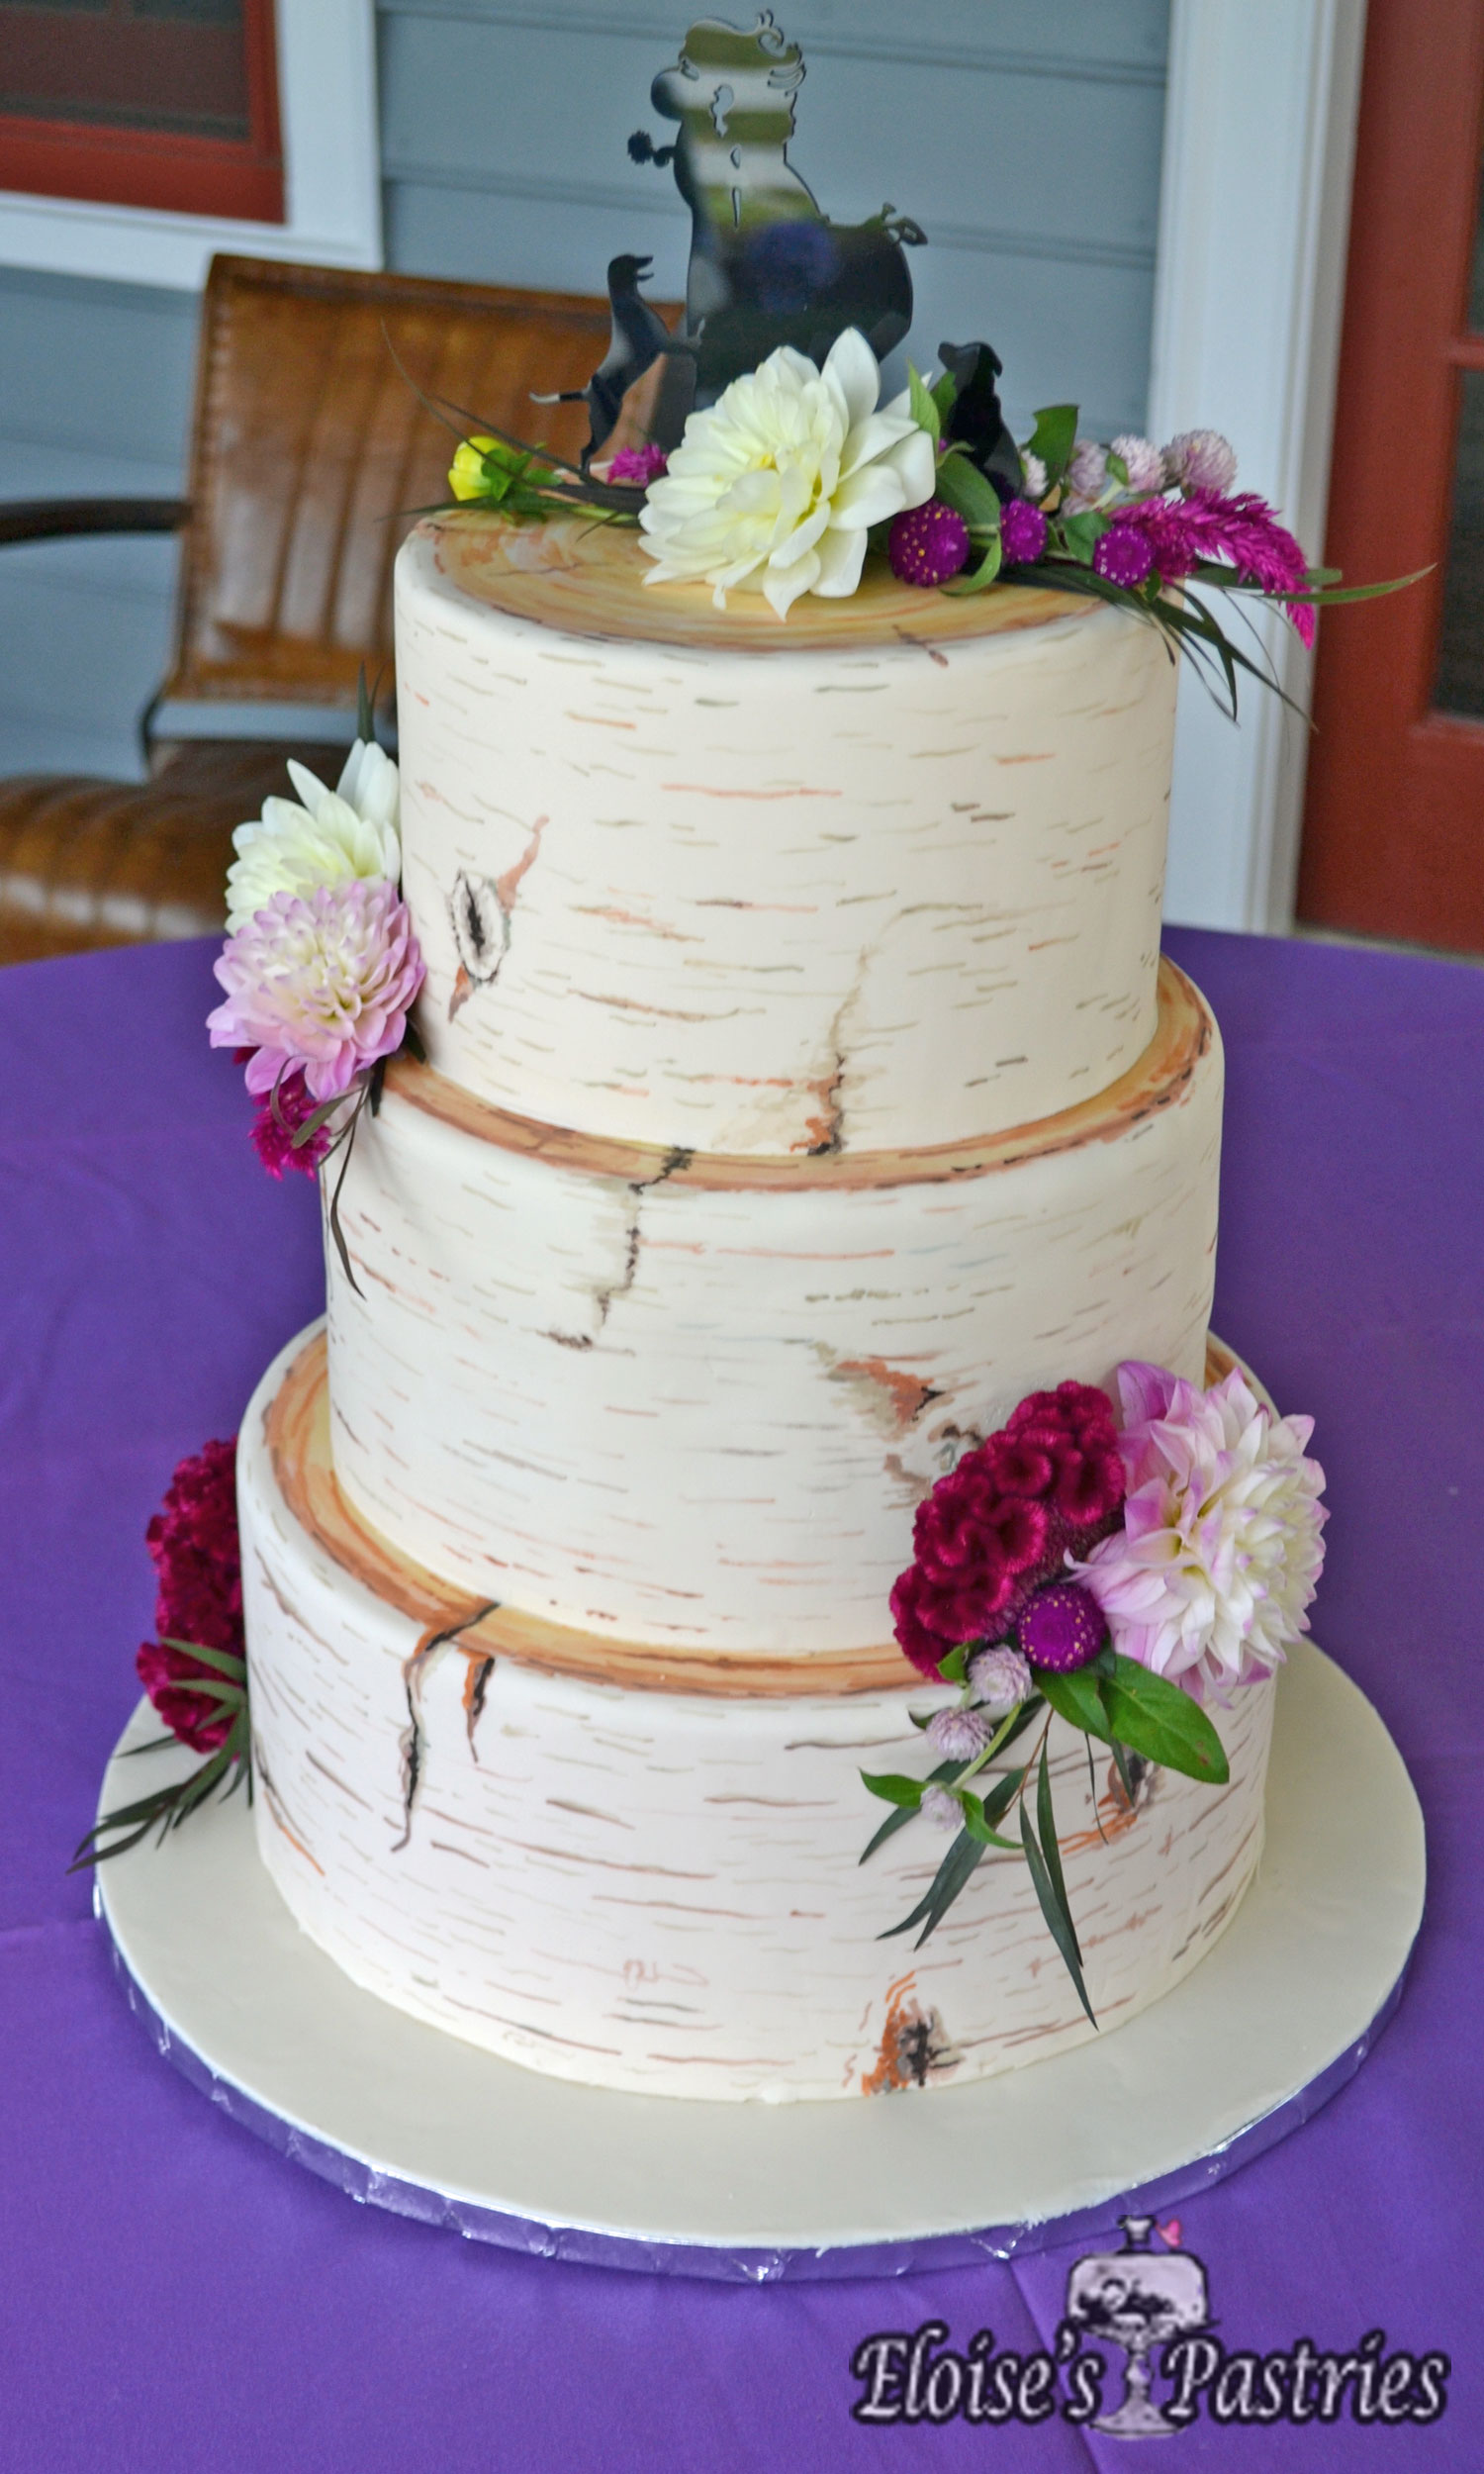 Rustic Wedding Cake Design with Flowers